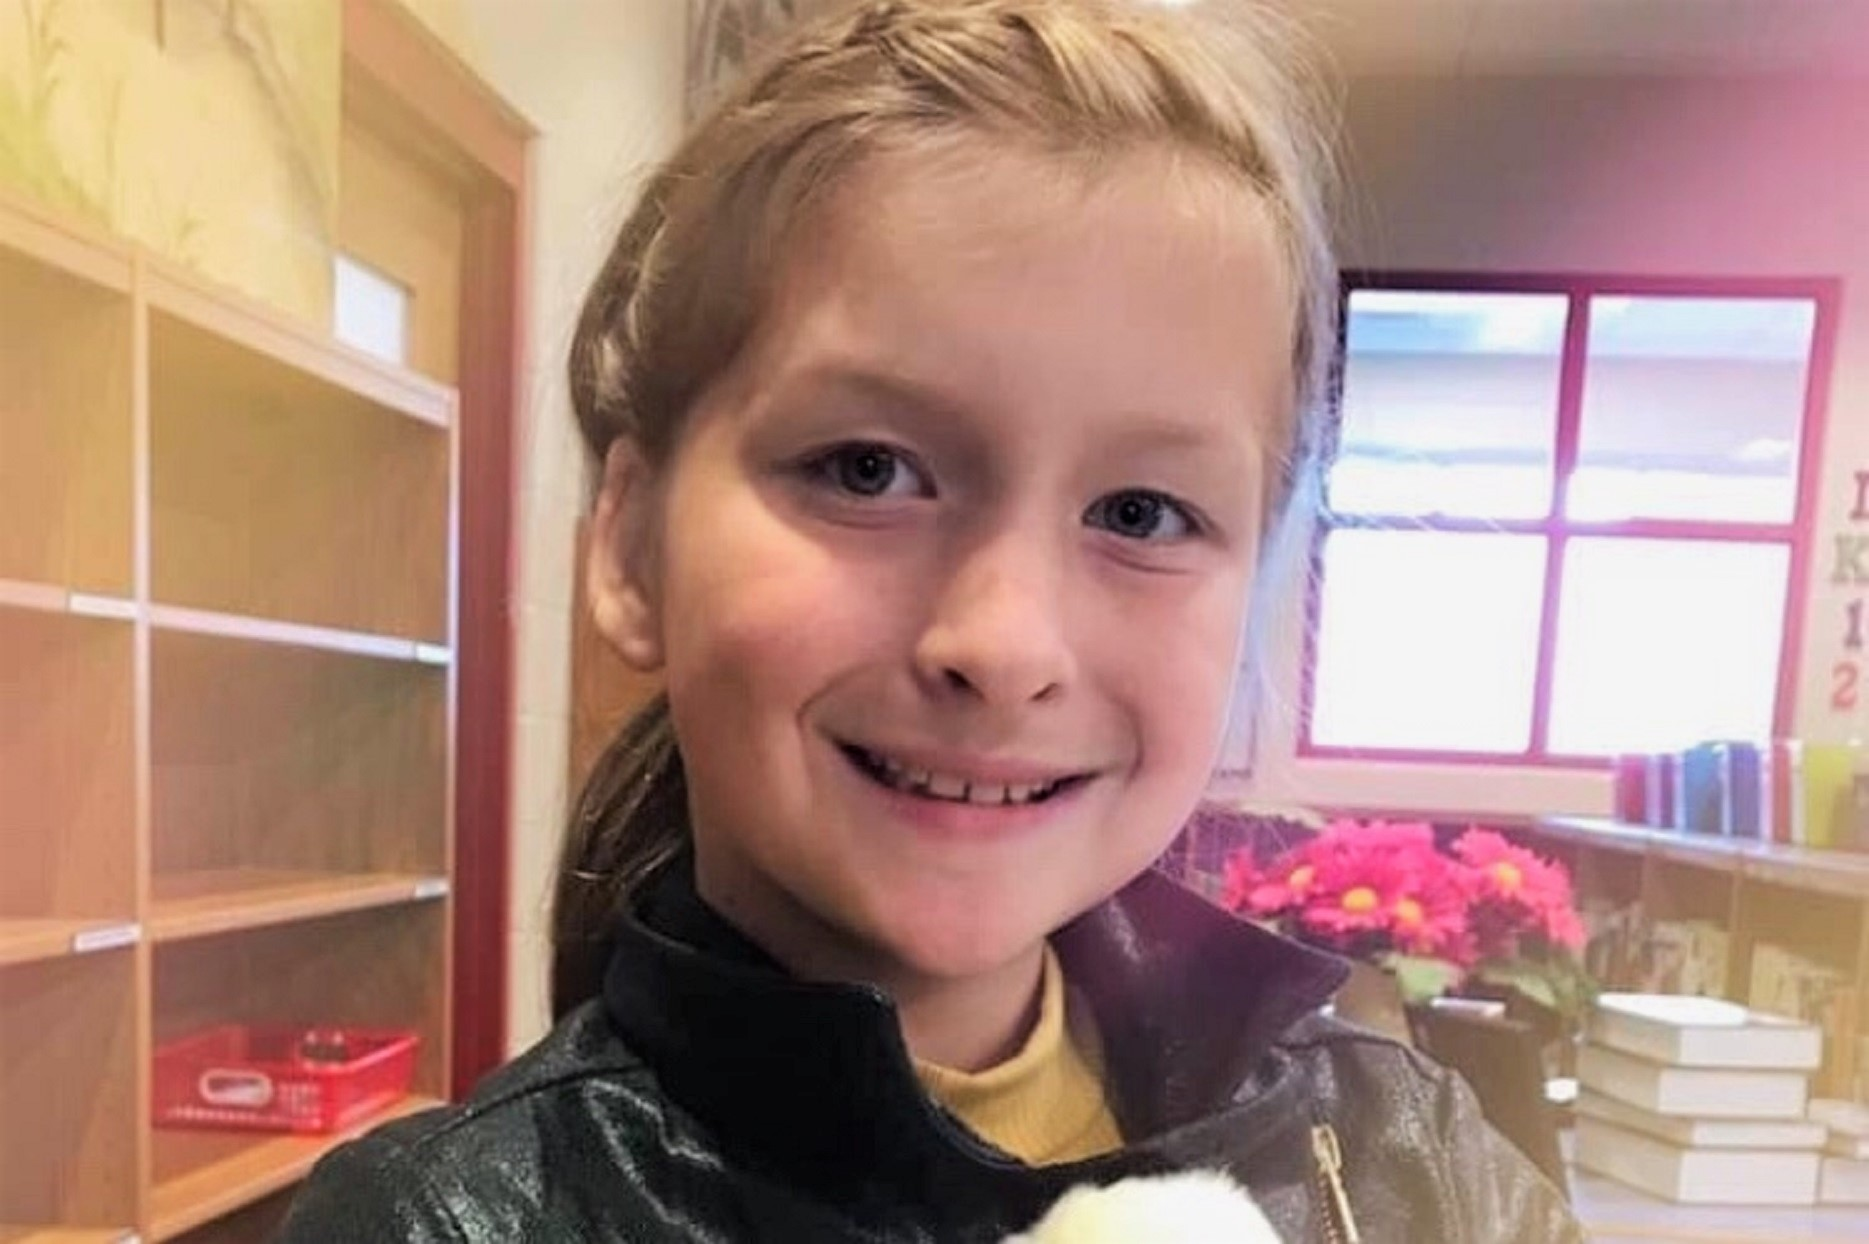 9-Year-Old Dies After Falling Off Bike in 'Freak Accident' on Her Birthday: It's a 'Nightmare'